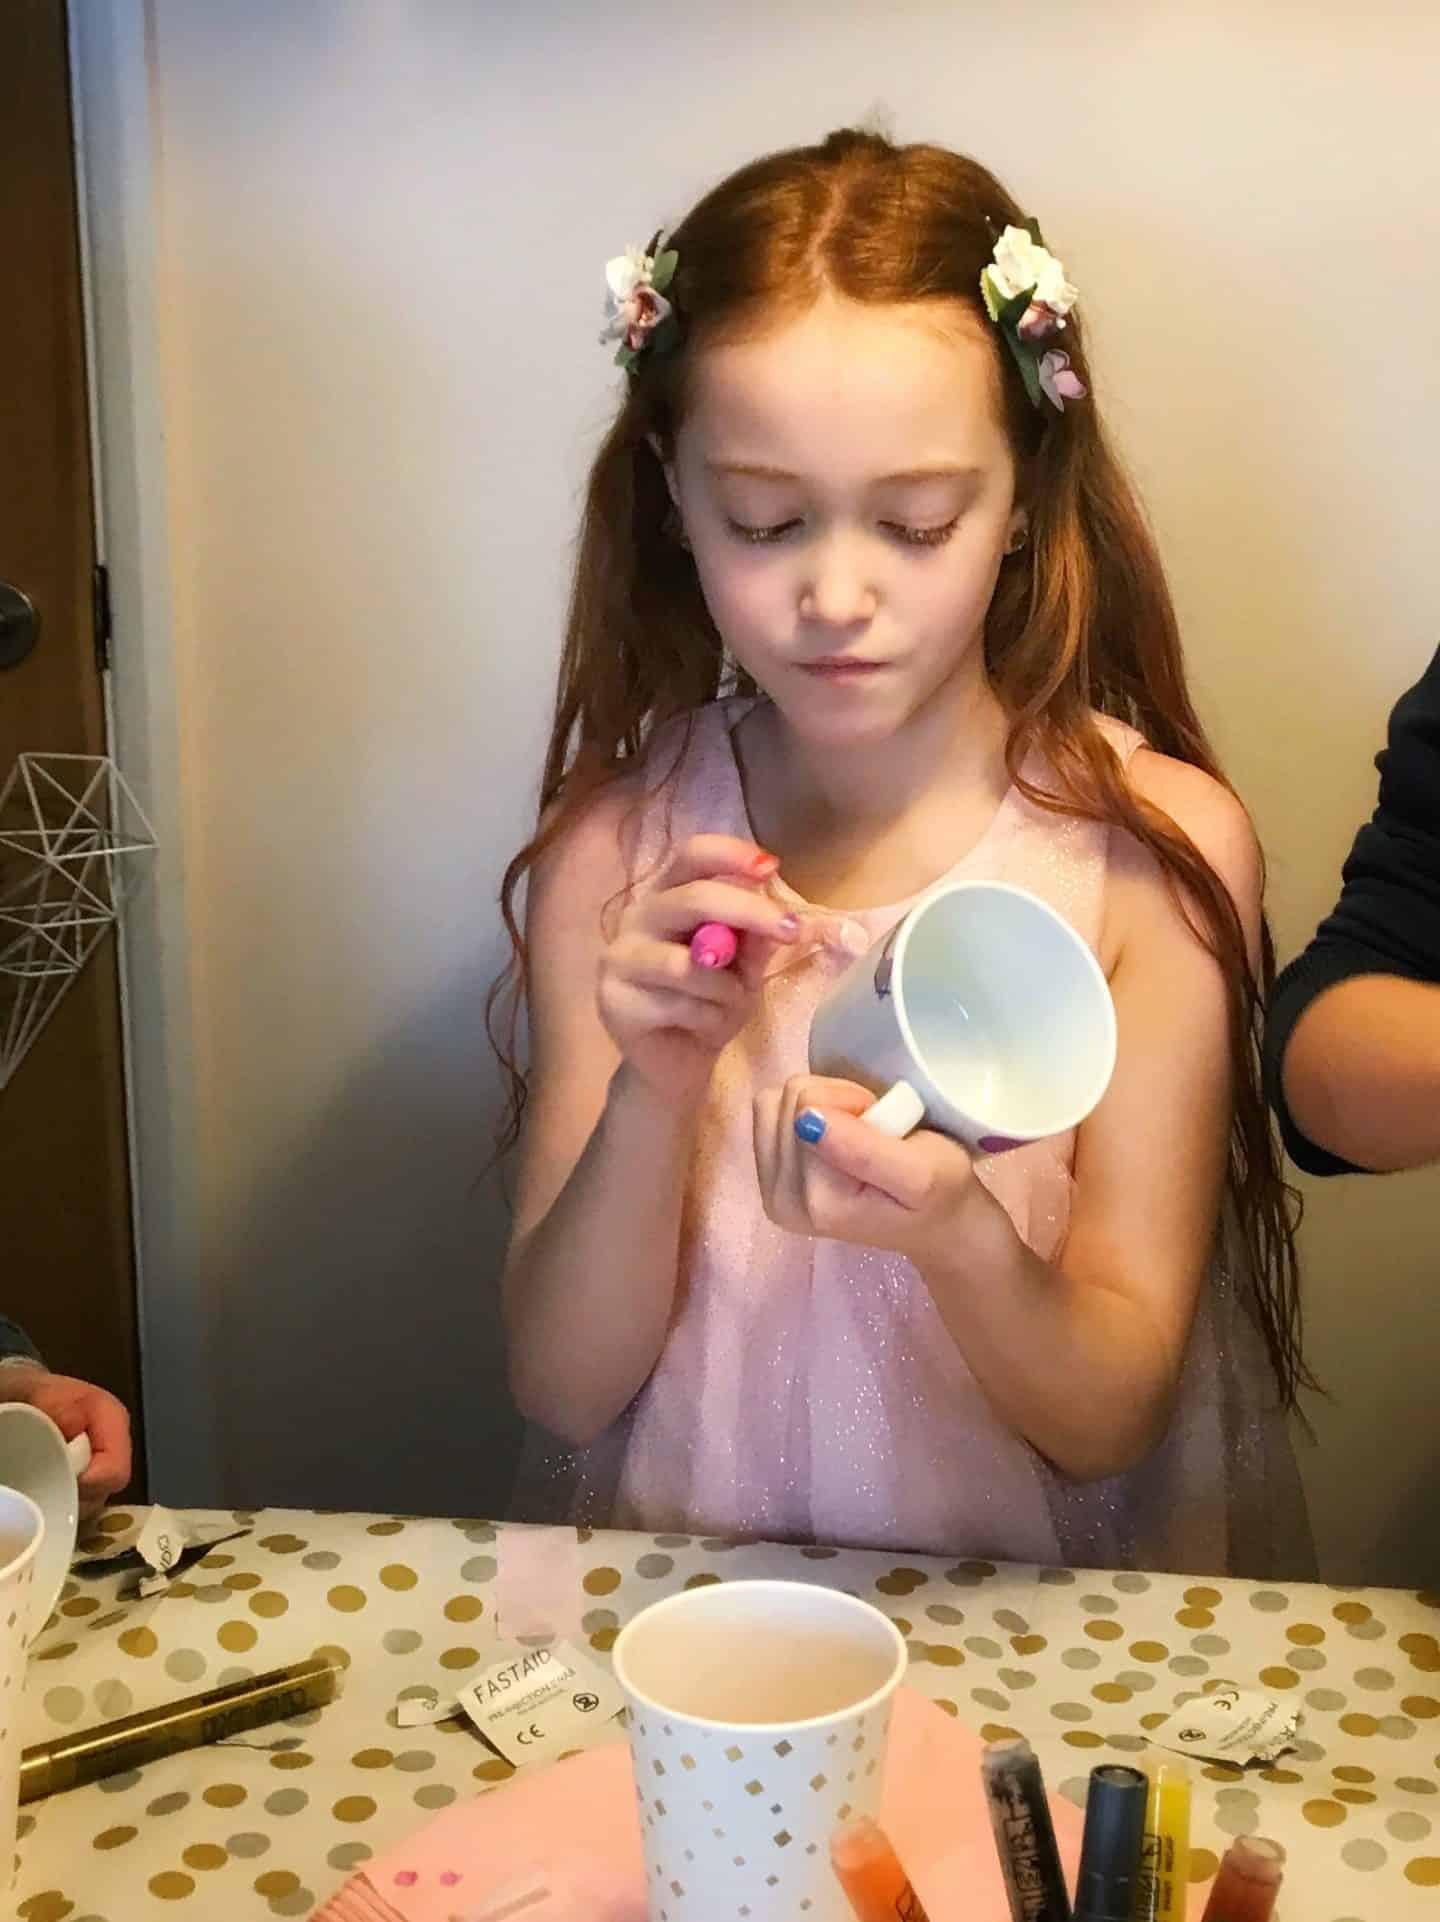 The birthday girl decorating a mug with ceramic markers